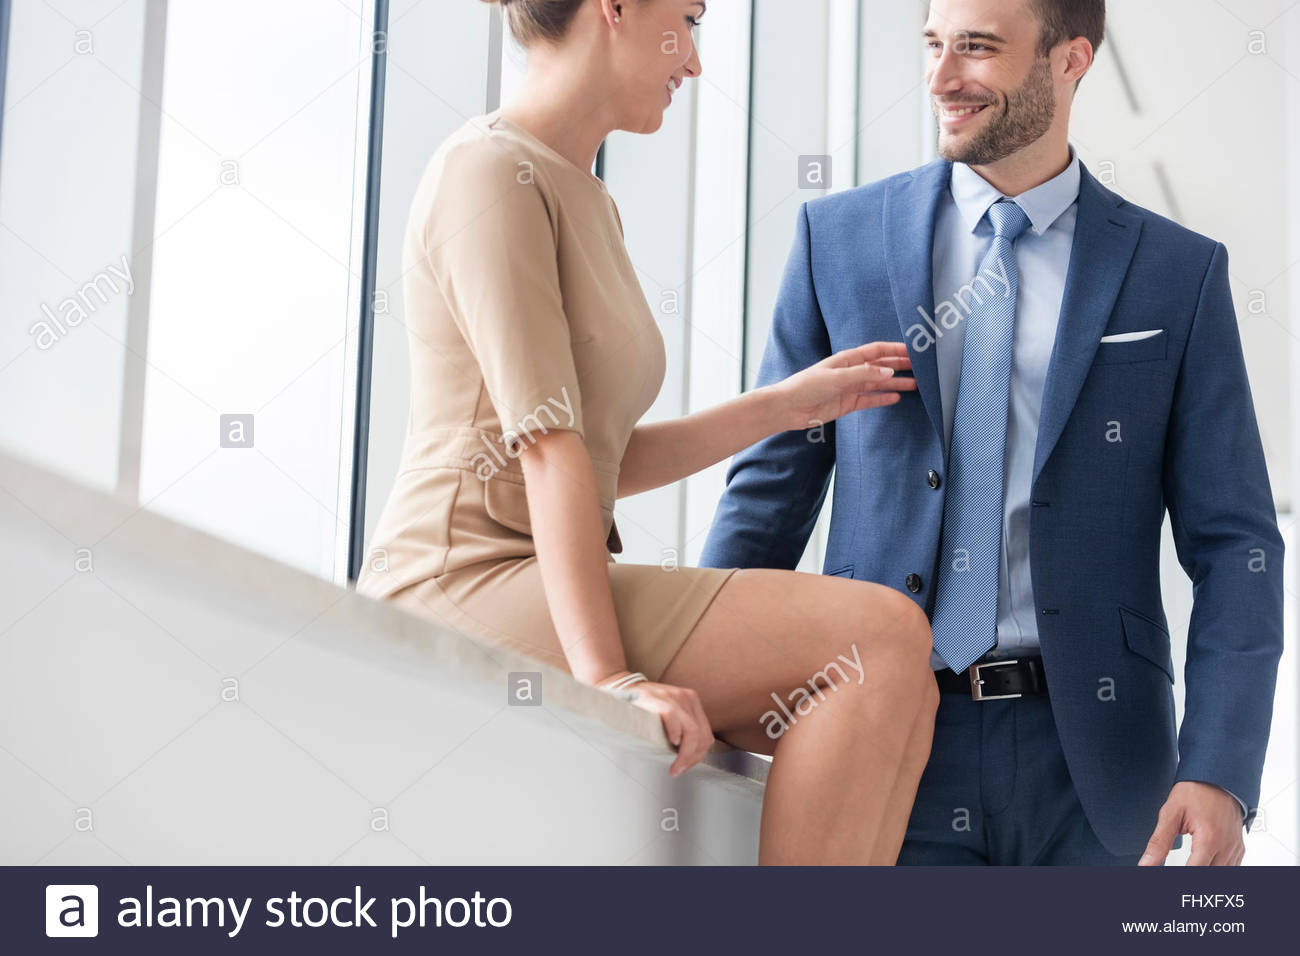 woman flirting signs at work video download video